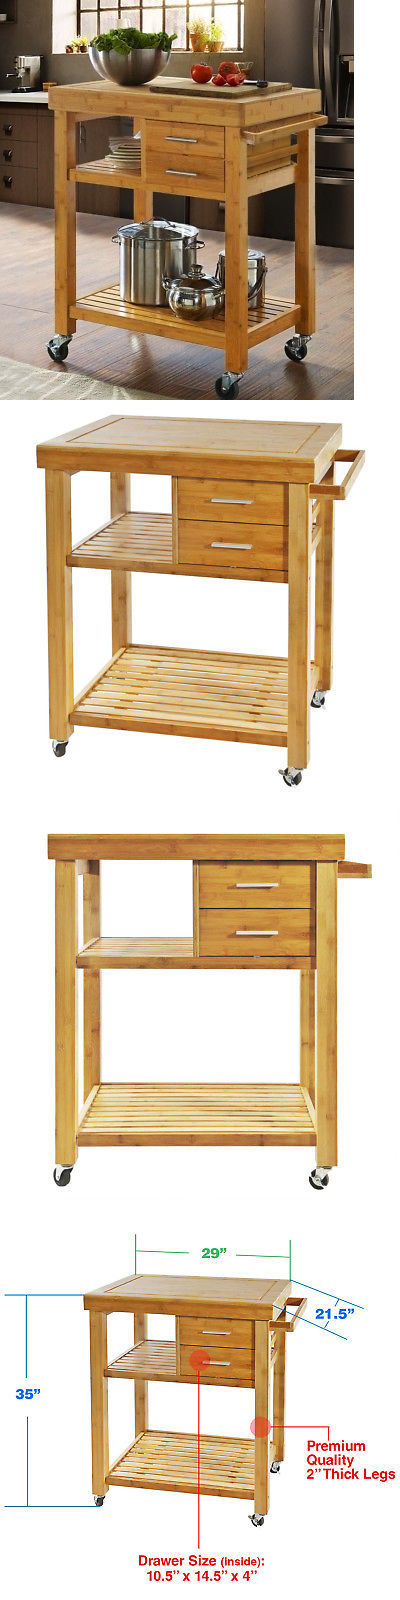 Kitchen Islands Carts 115753 Rolling Bamboo Island Cart Trolley Cabinet W Towel